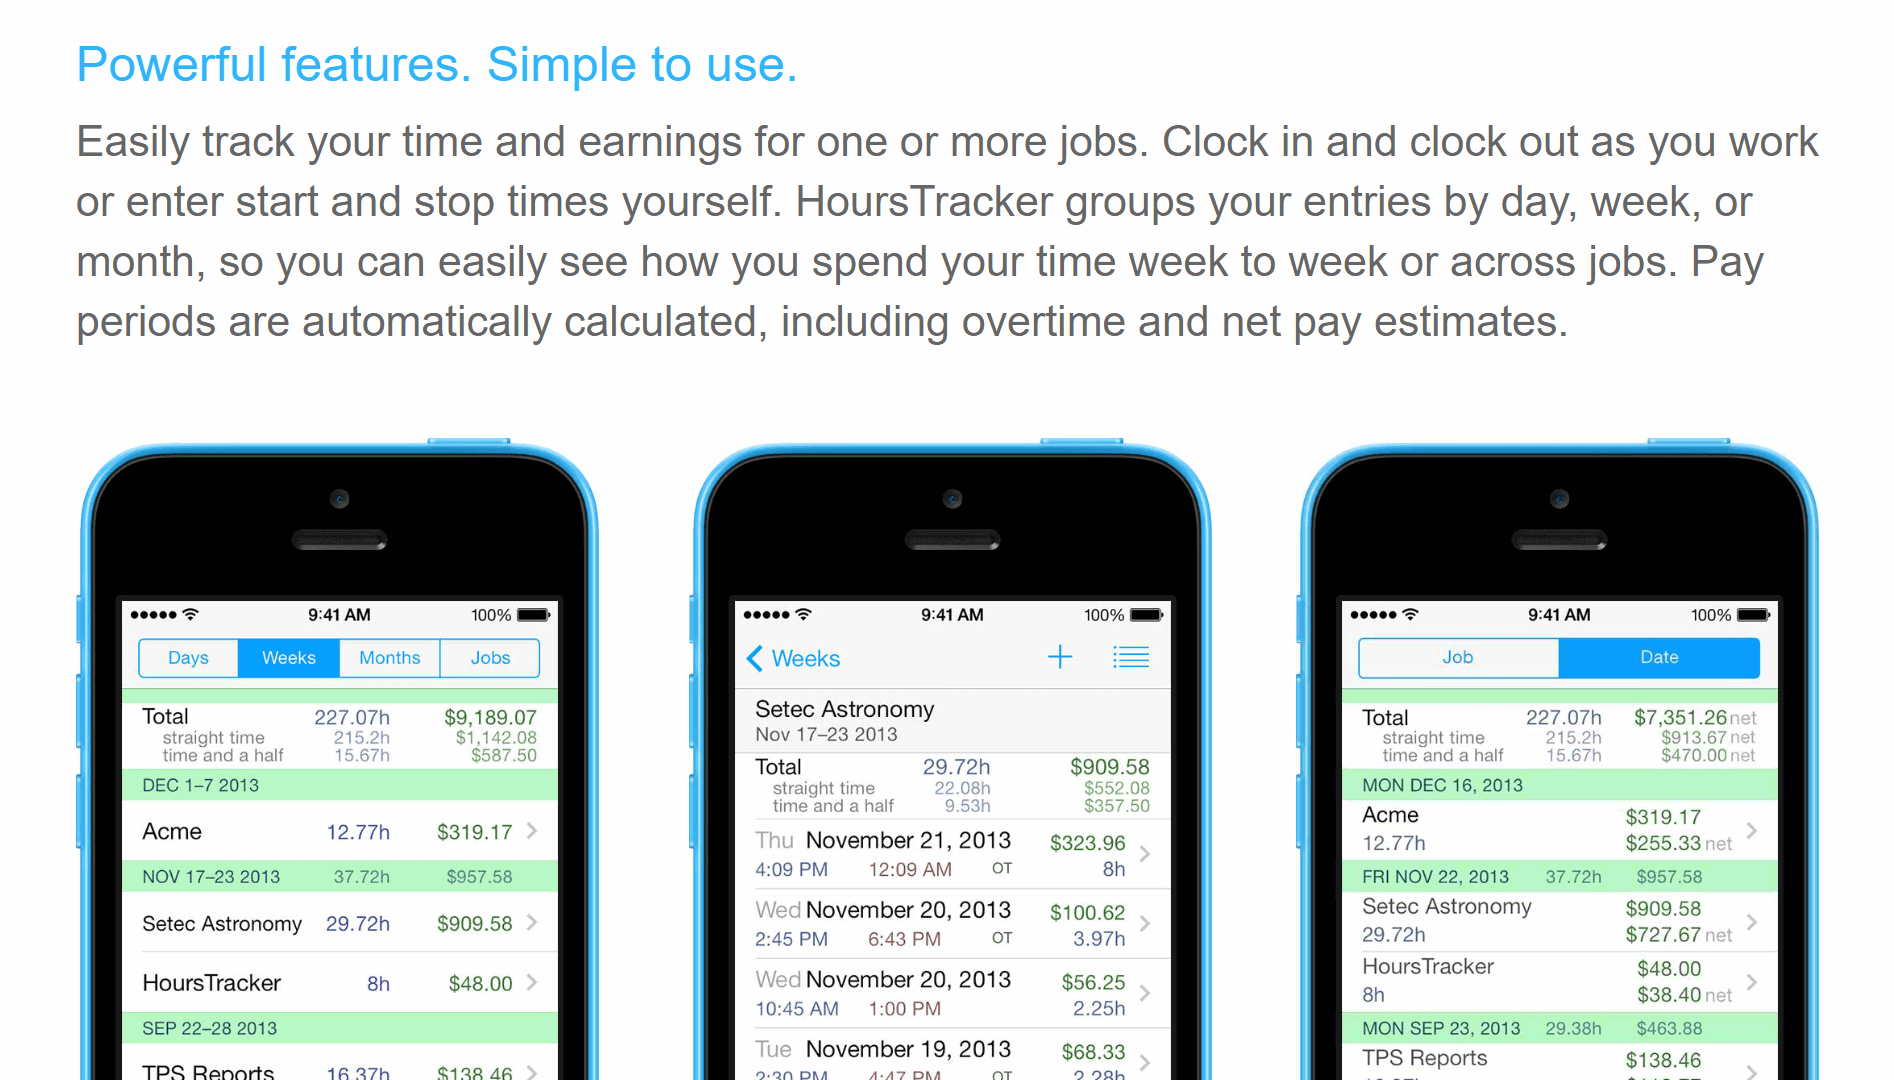 hourstracker amployee gps tracker app